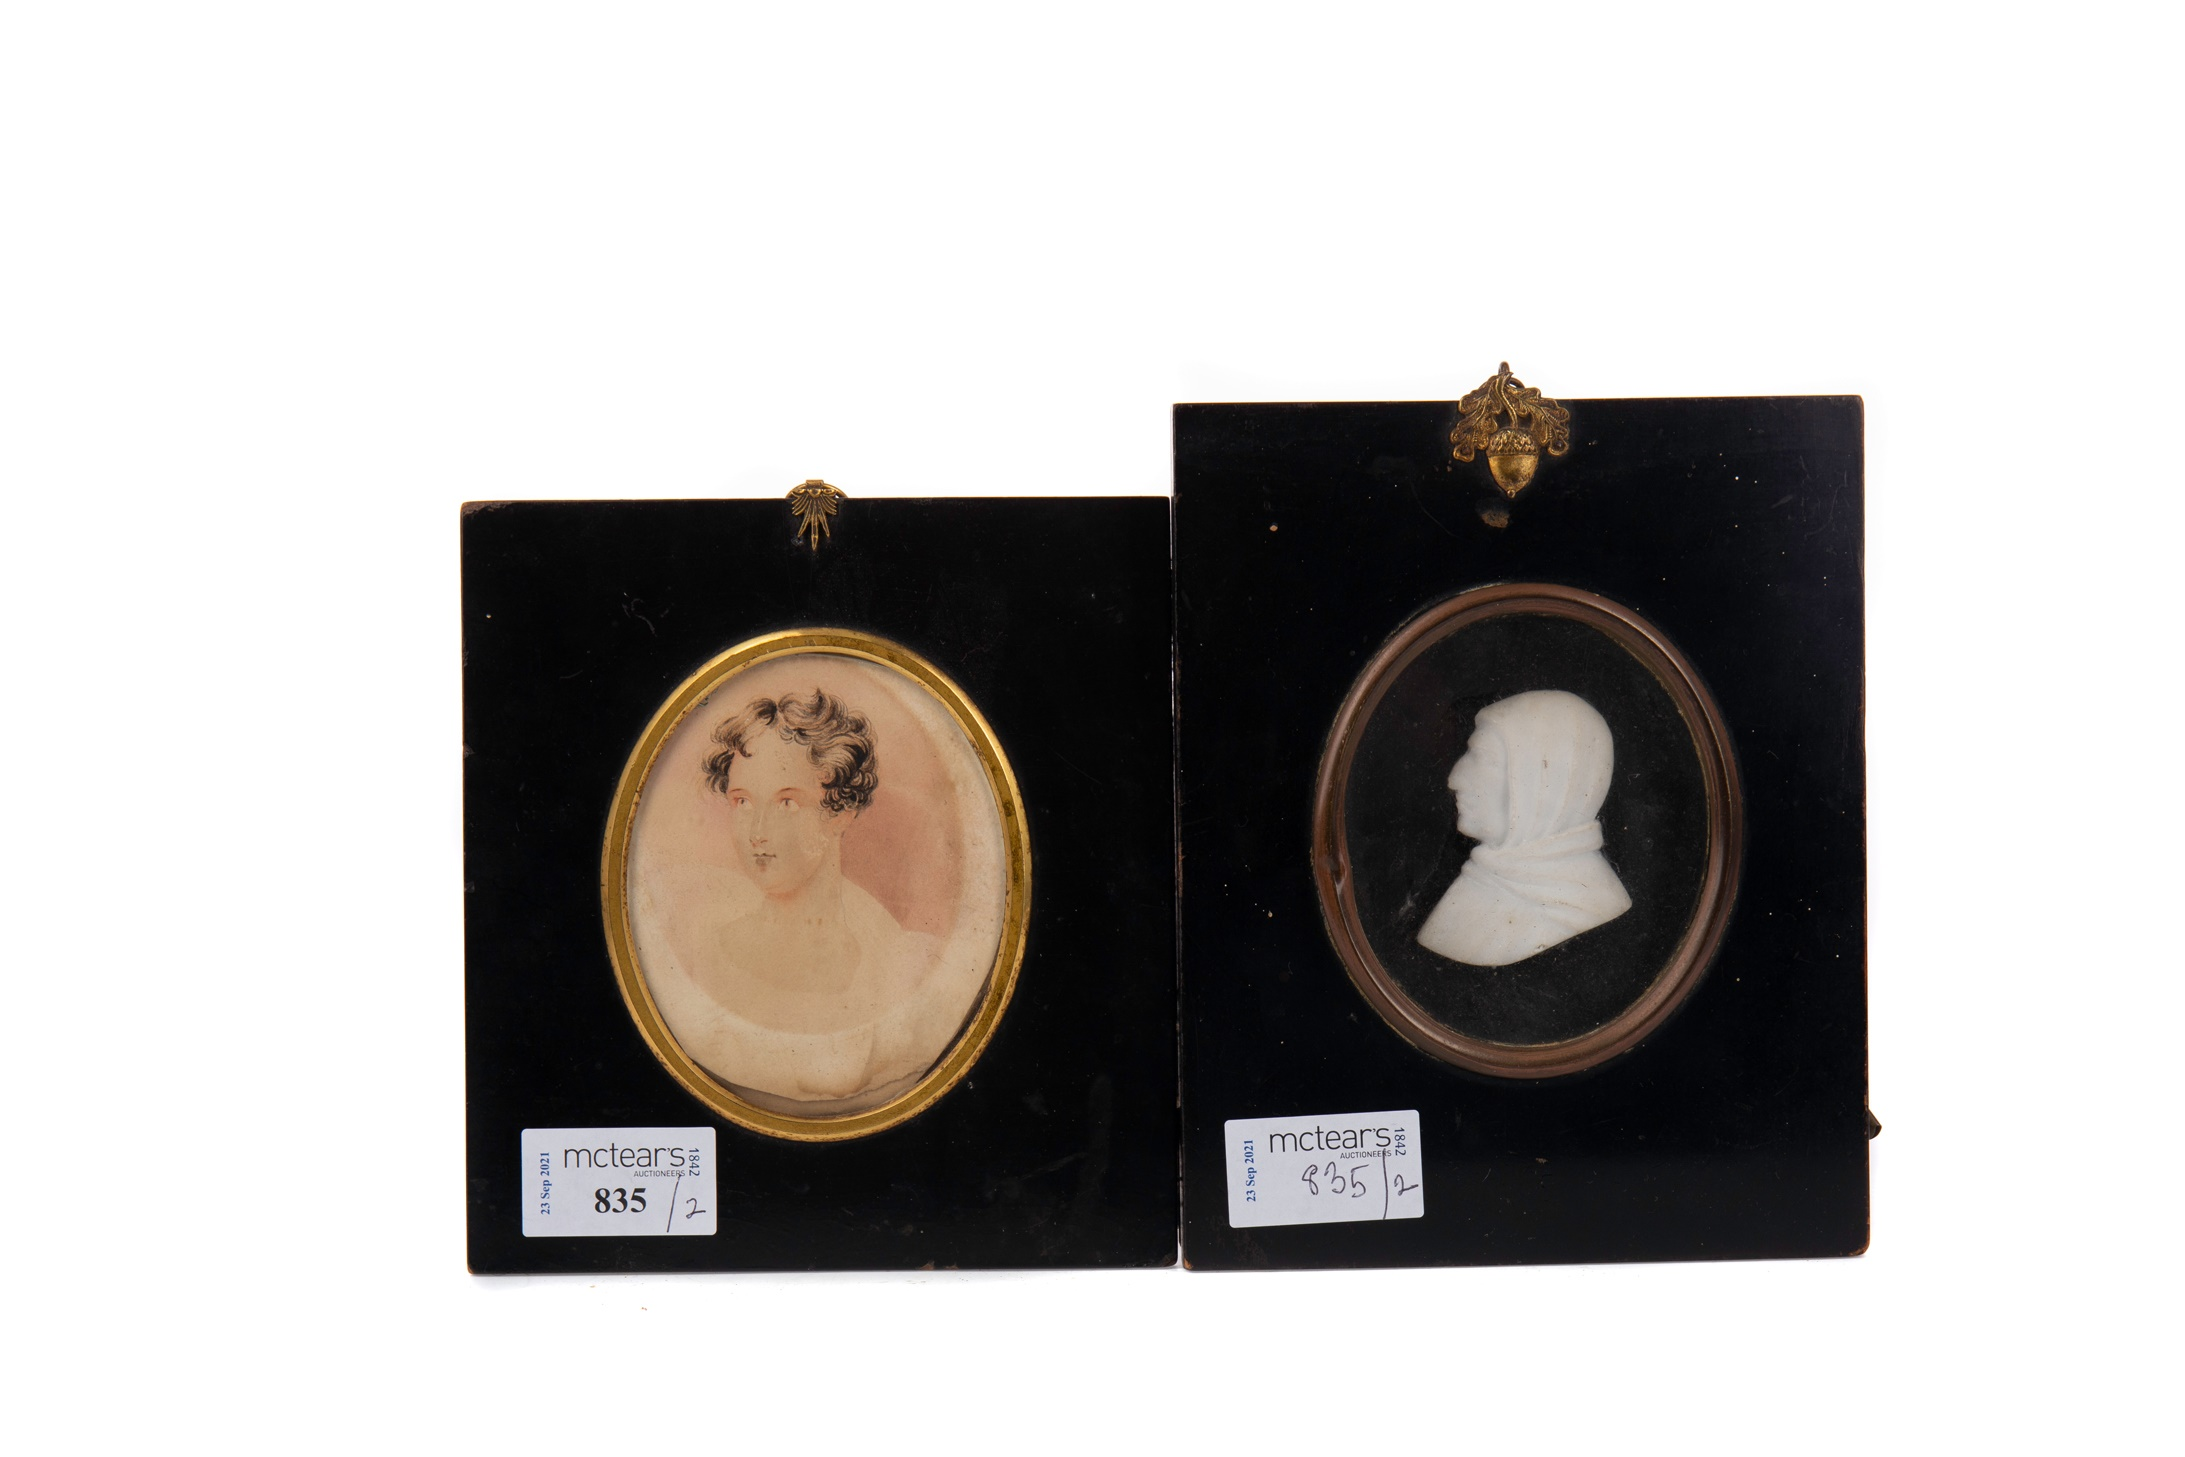 TWO LATE 18TH/EARLY 19TH CENTURY MINIATURES